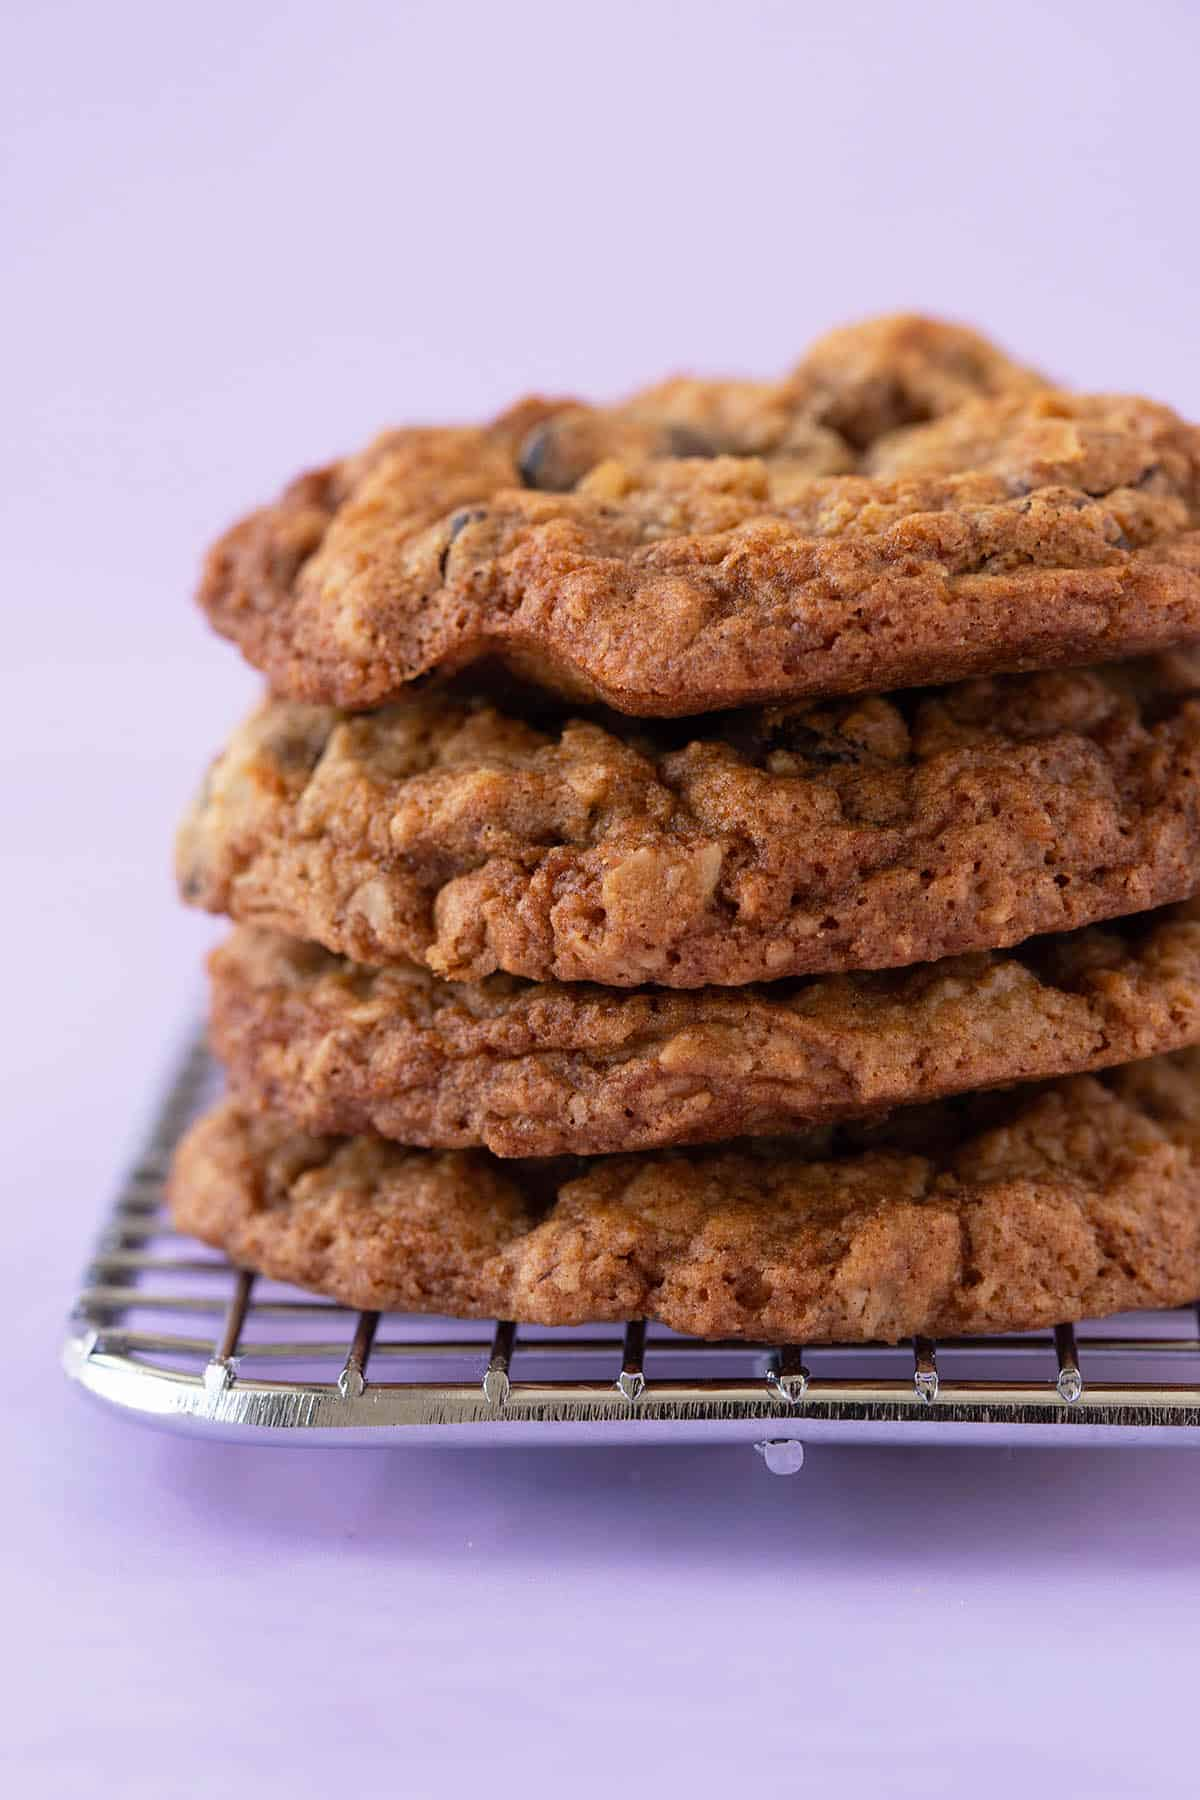 A stack of homemade Oatmeal Cookies on a purple background